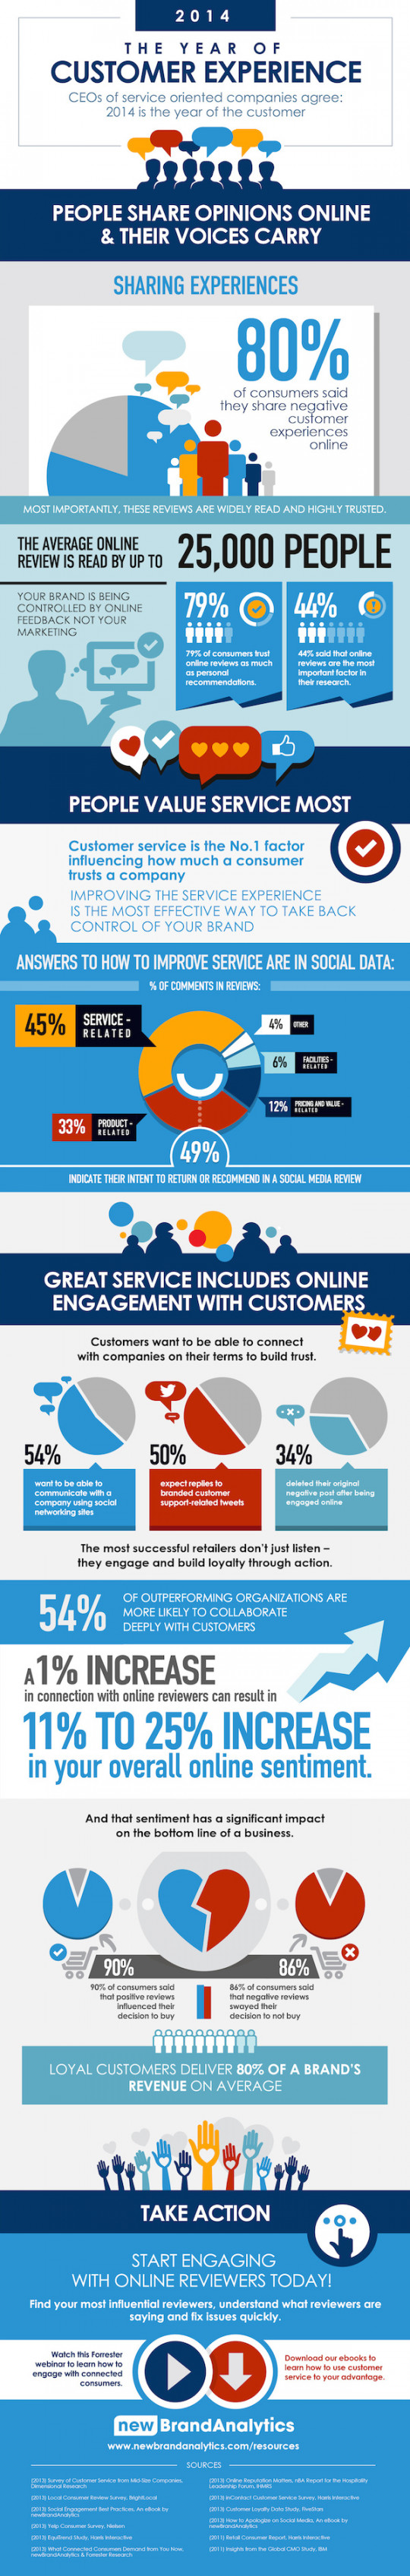 The Year of Customer Experience